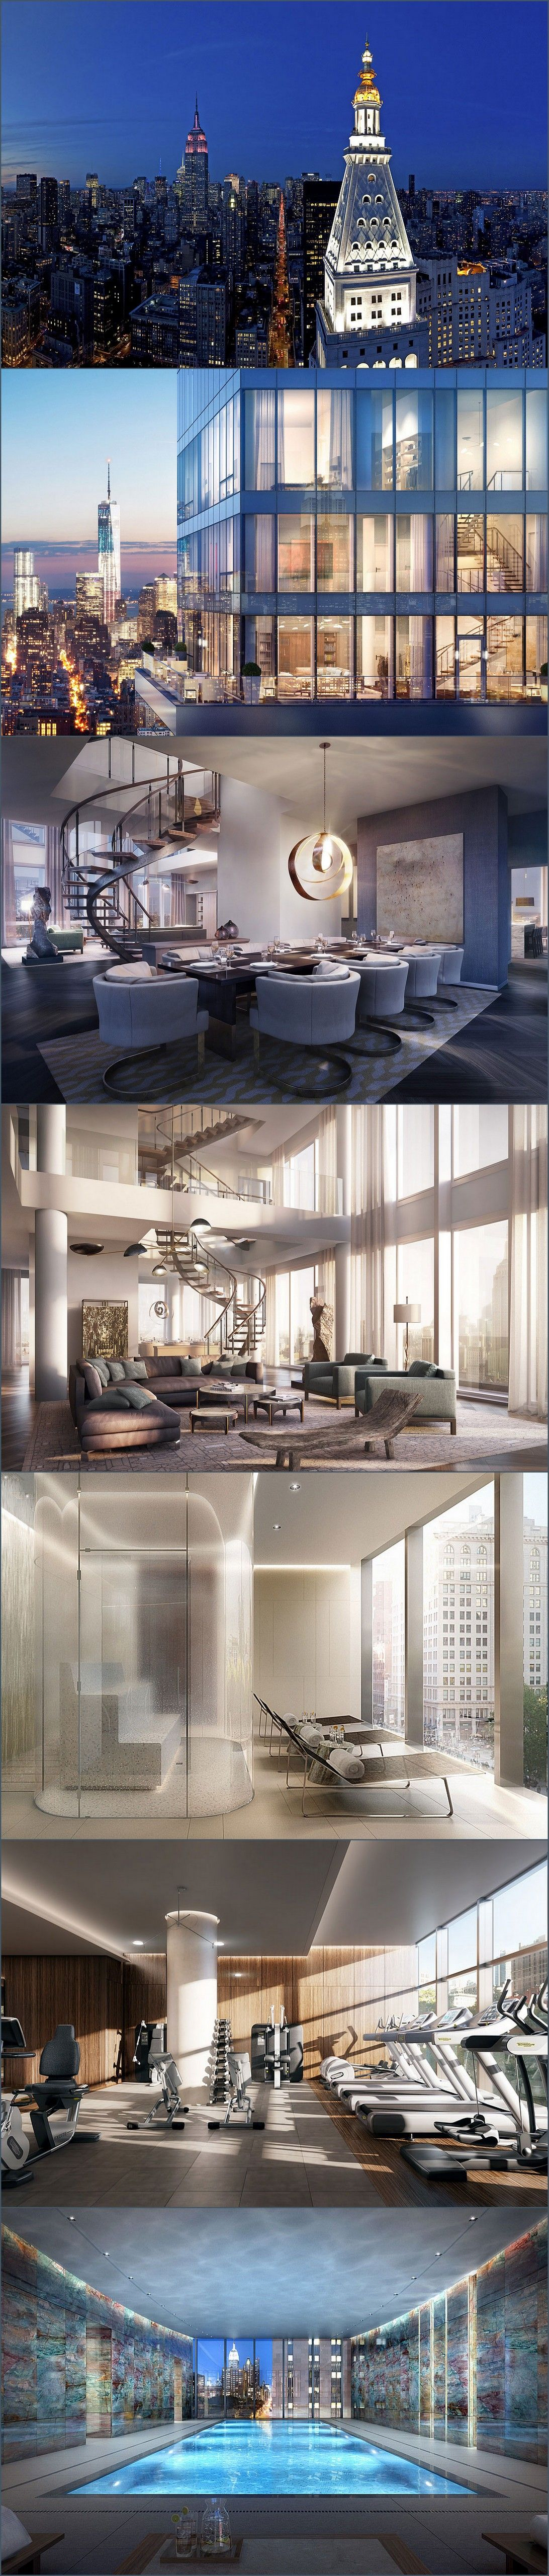 Amazing new york penthouse penthouses nice and luxury for New york penthouse apartments